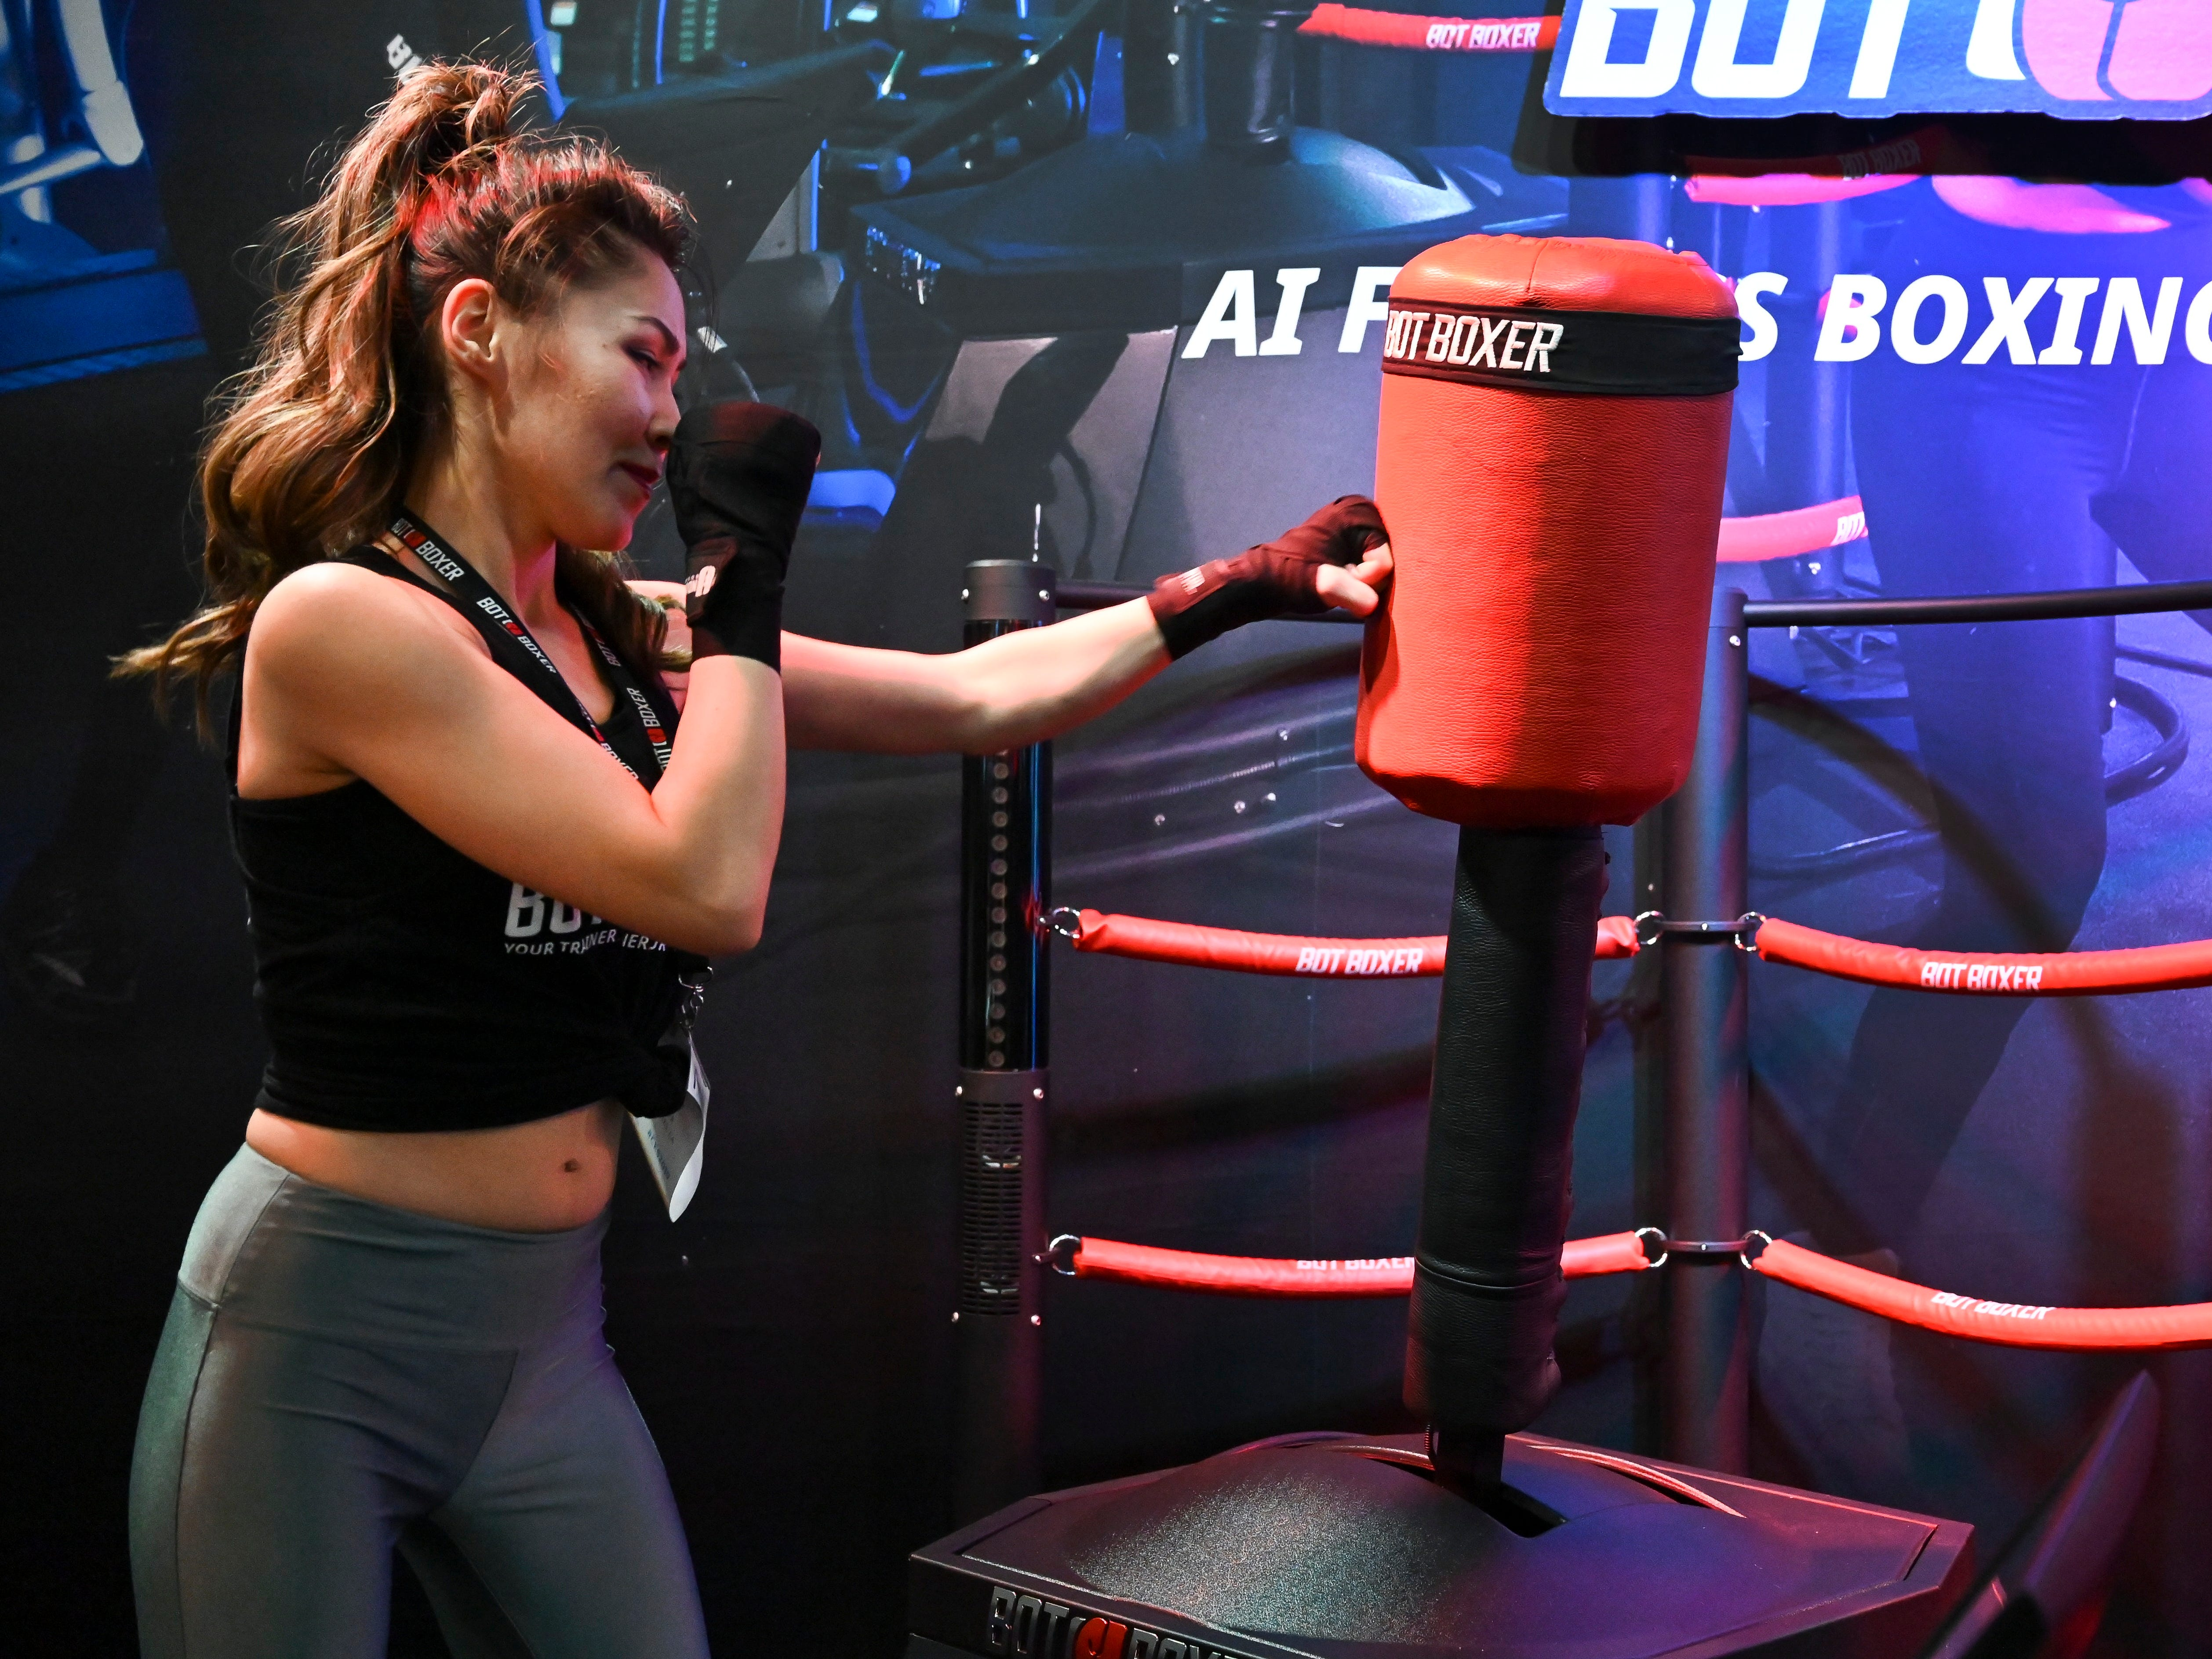 Bo Kairat demonstrates BotBoxer a robotic personal sparring partner for combat sports training.